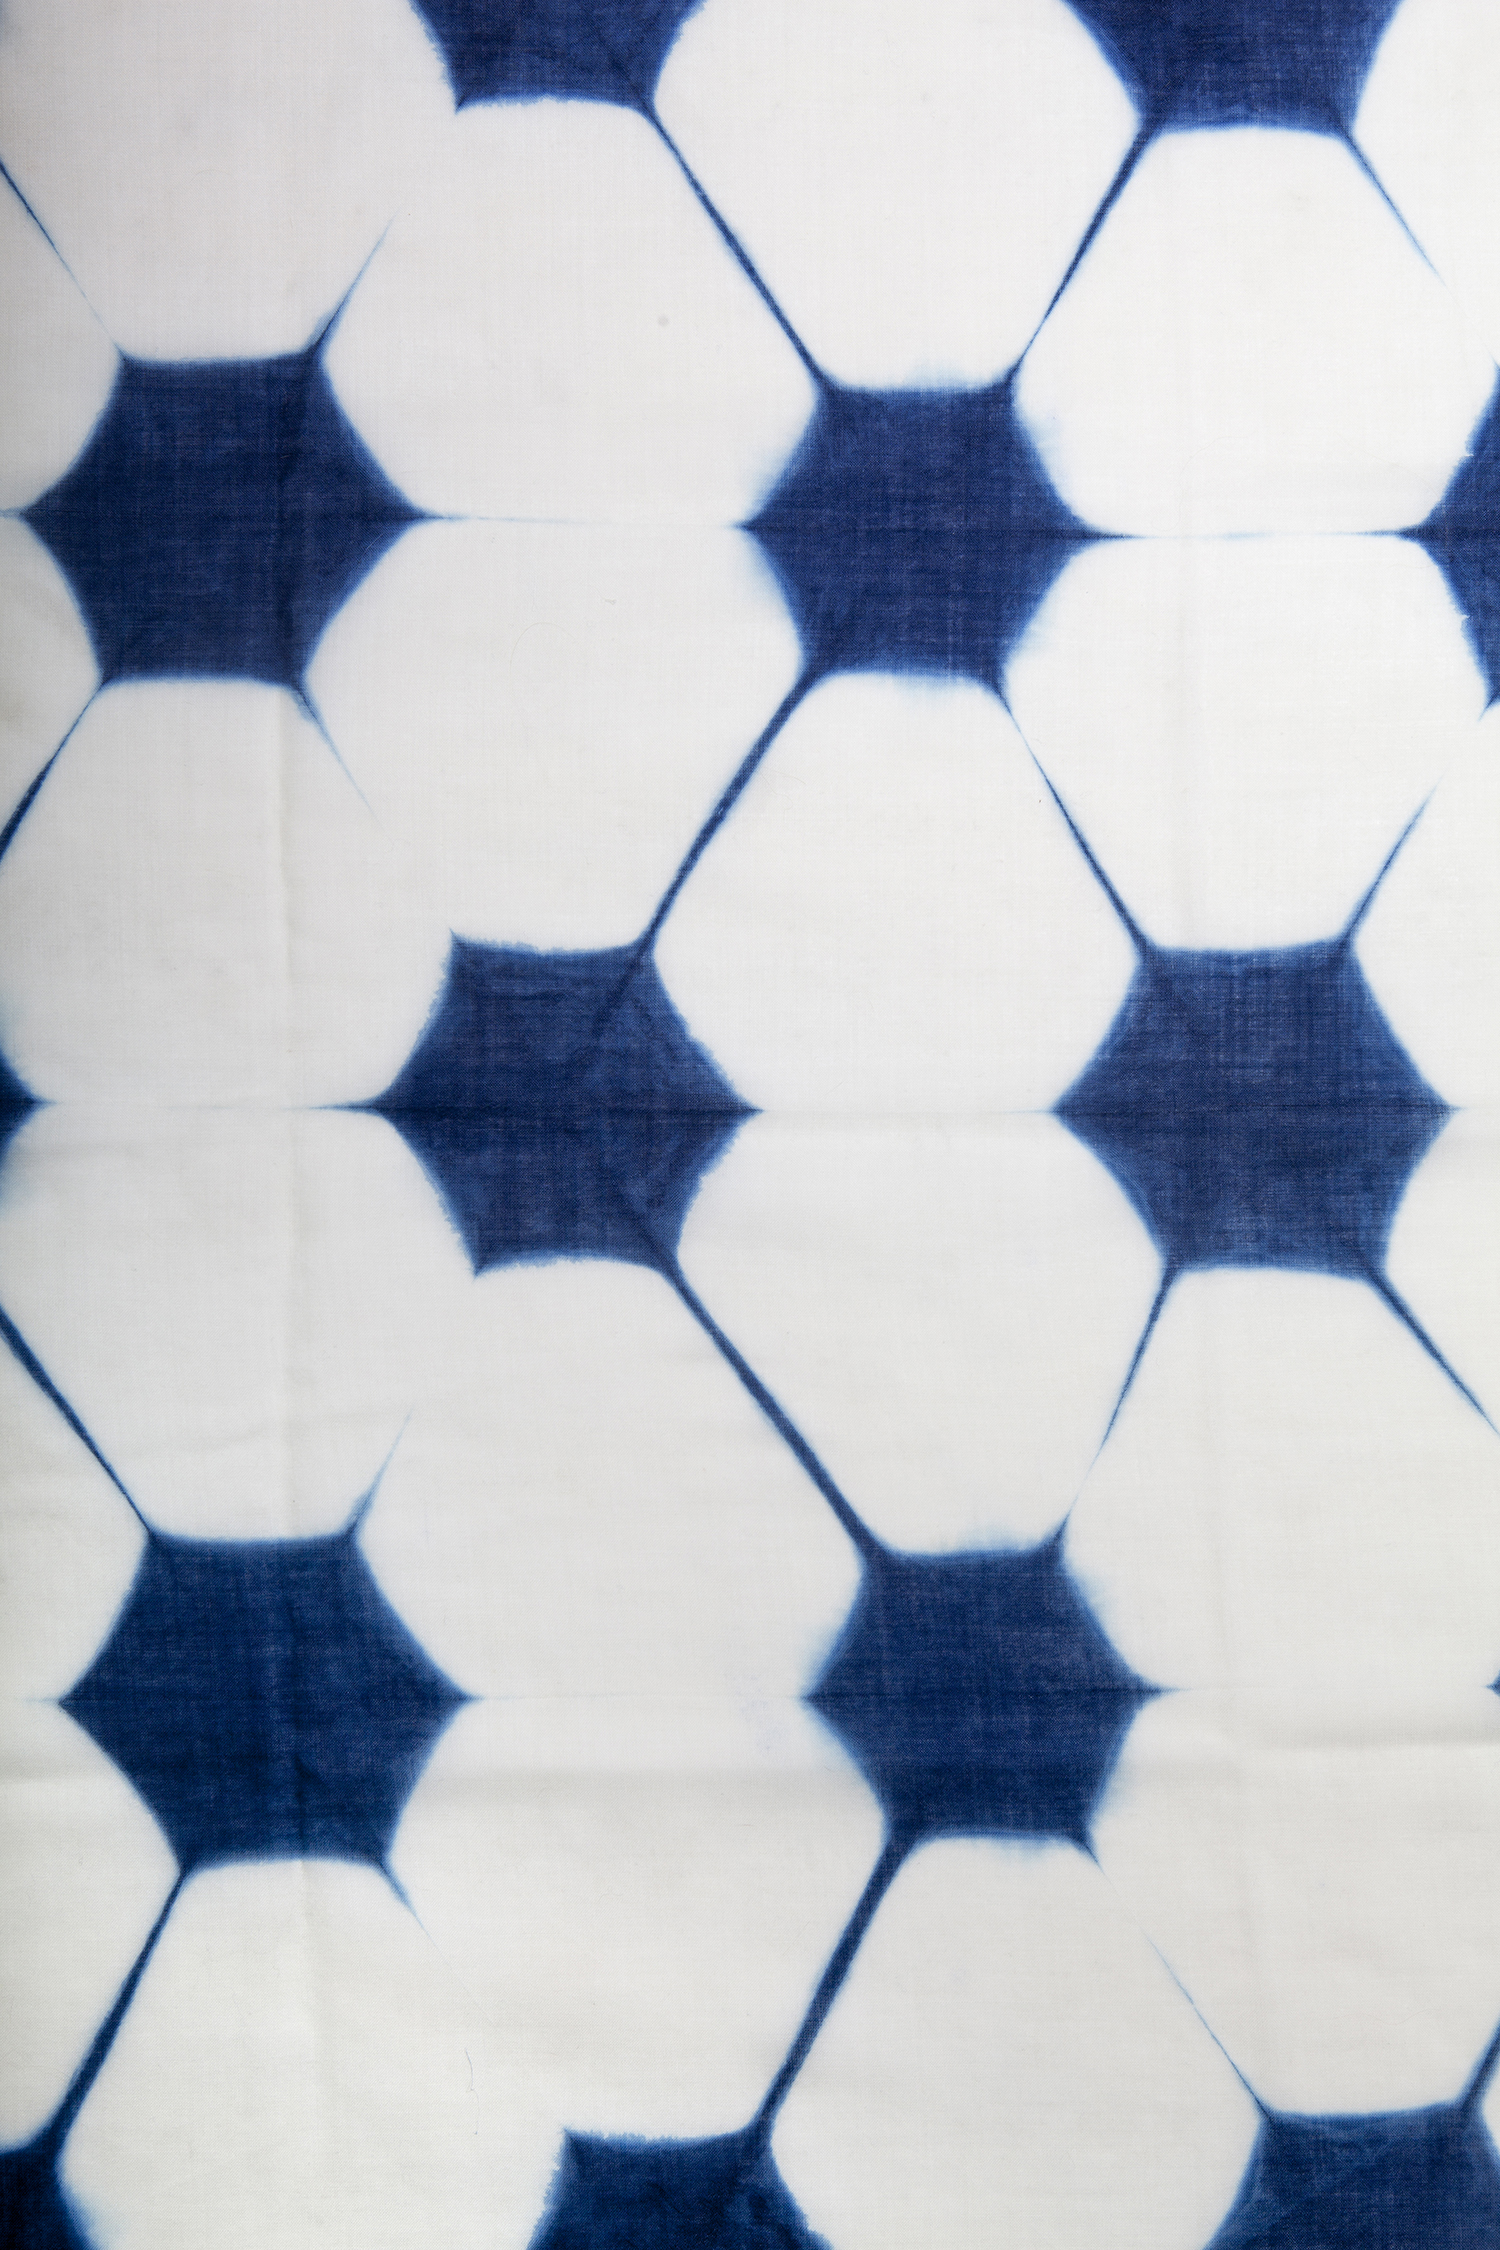 3b.scarf 2 hexagons copy